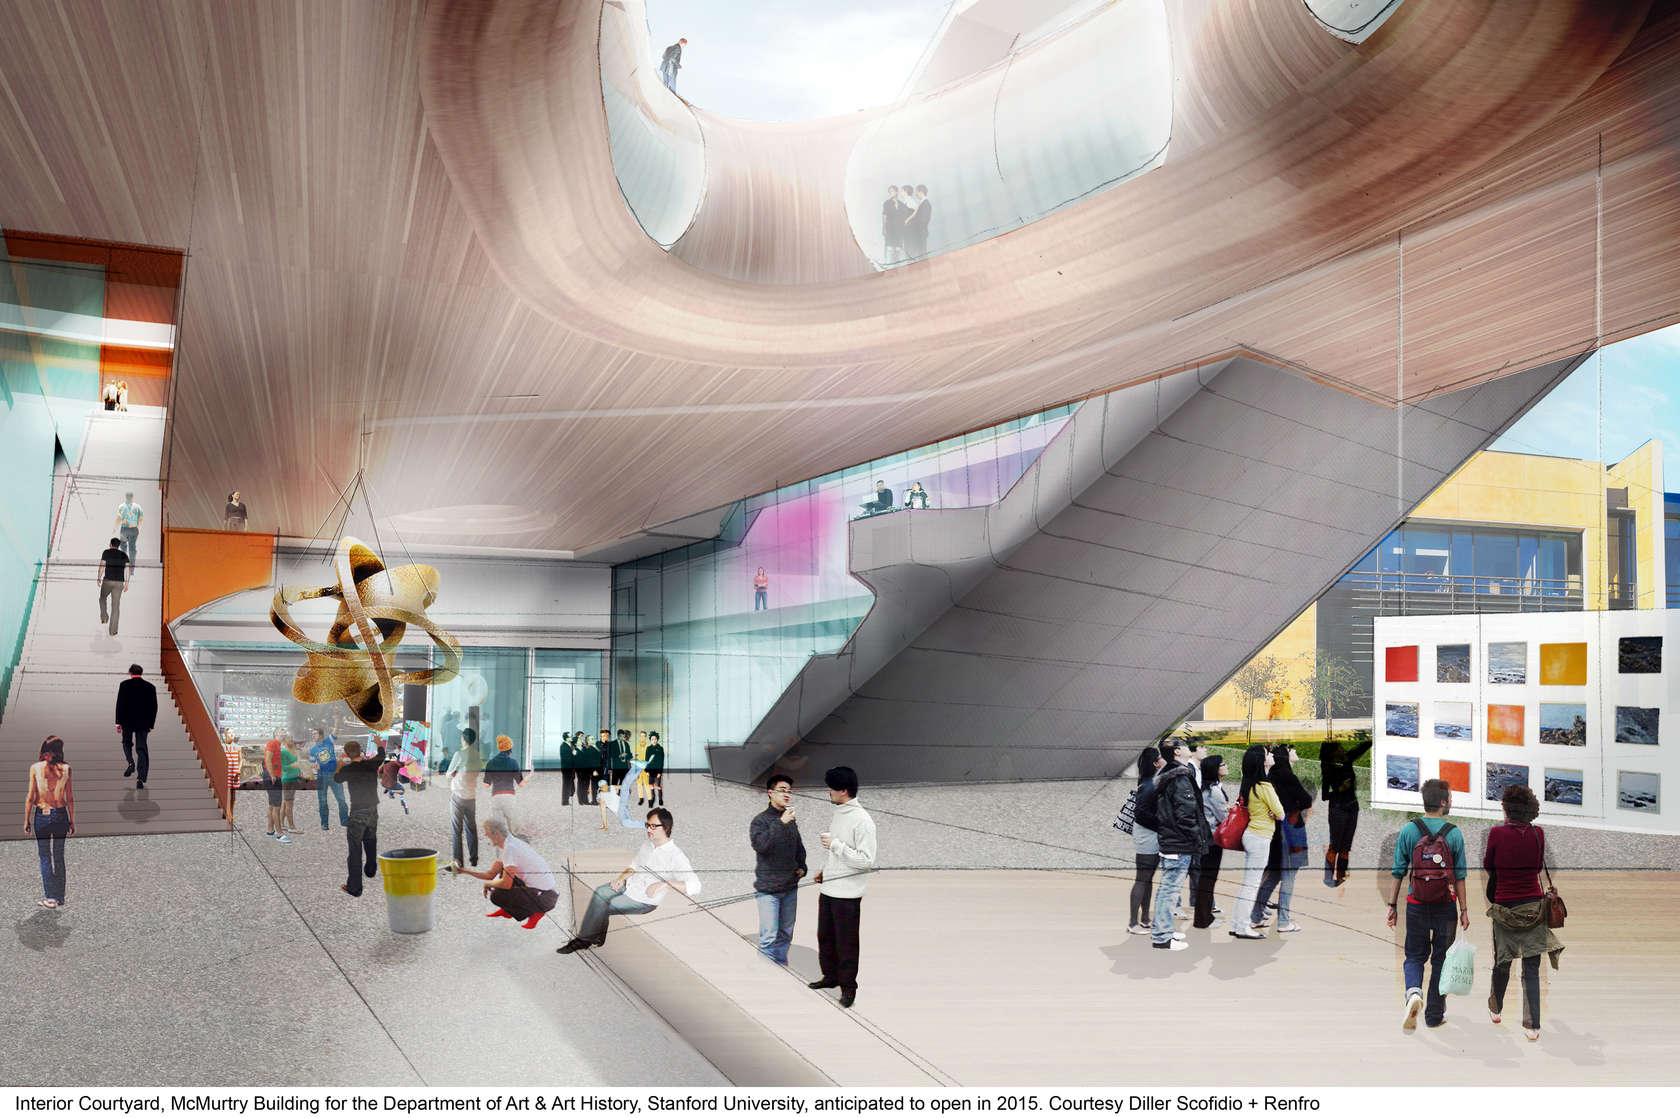 Stanford Gets a Diller Scofidio + Renfro Art Icon